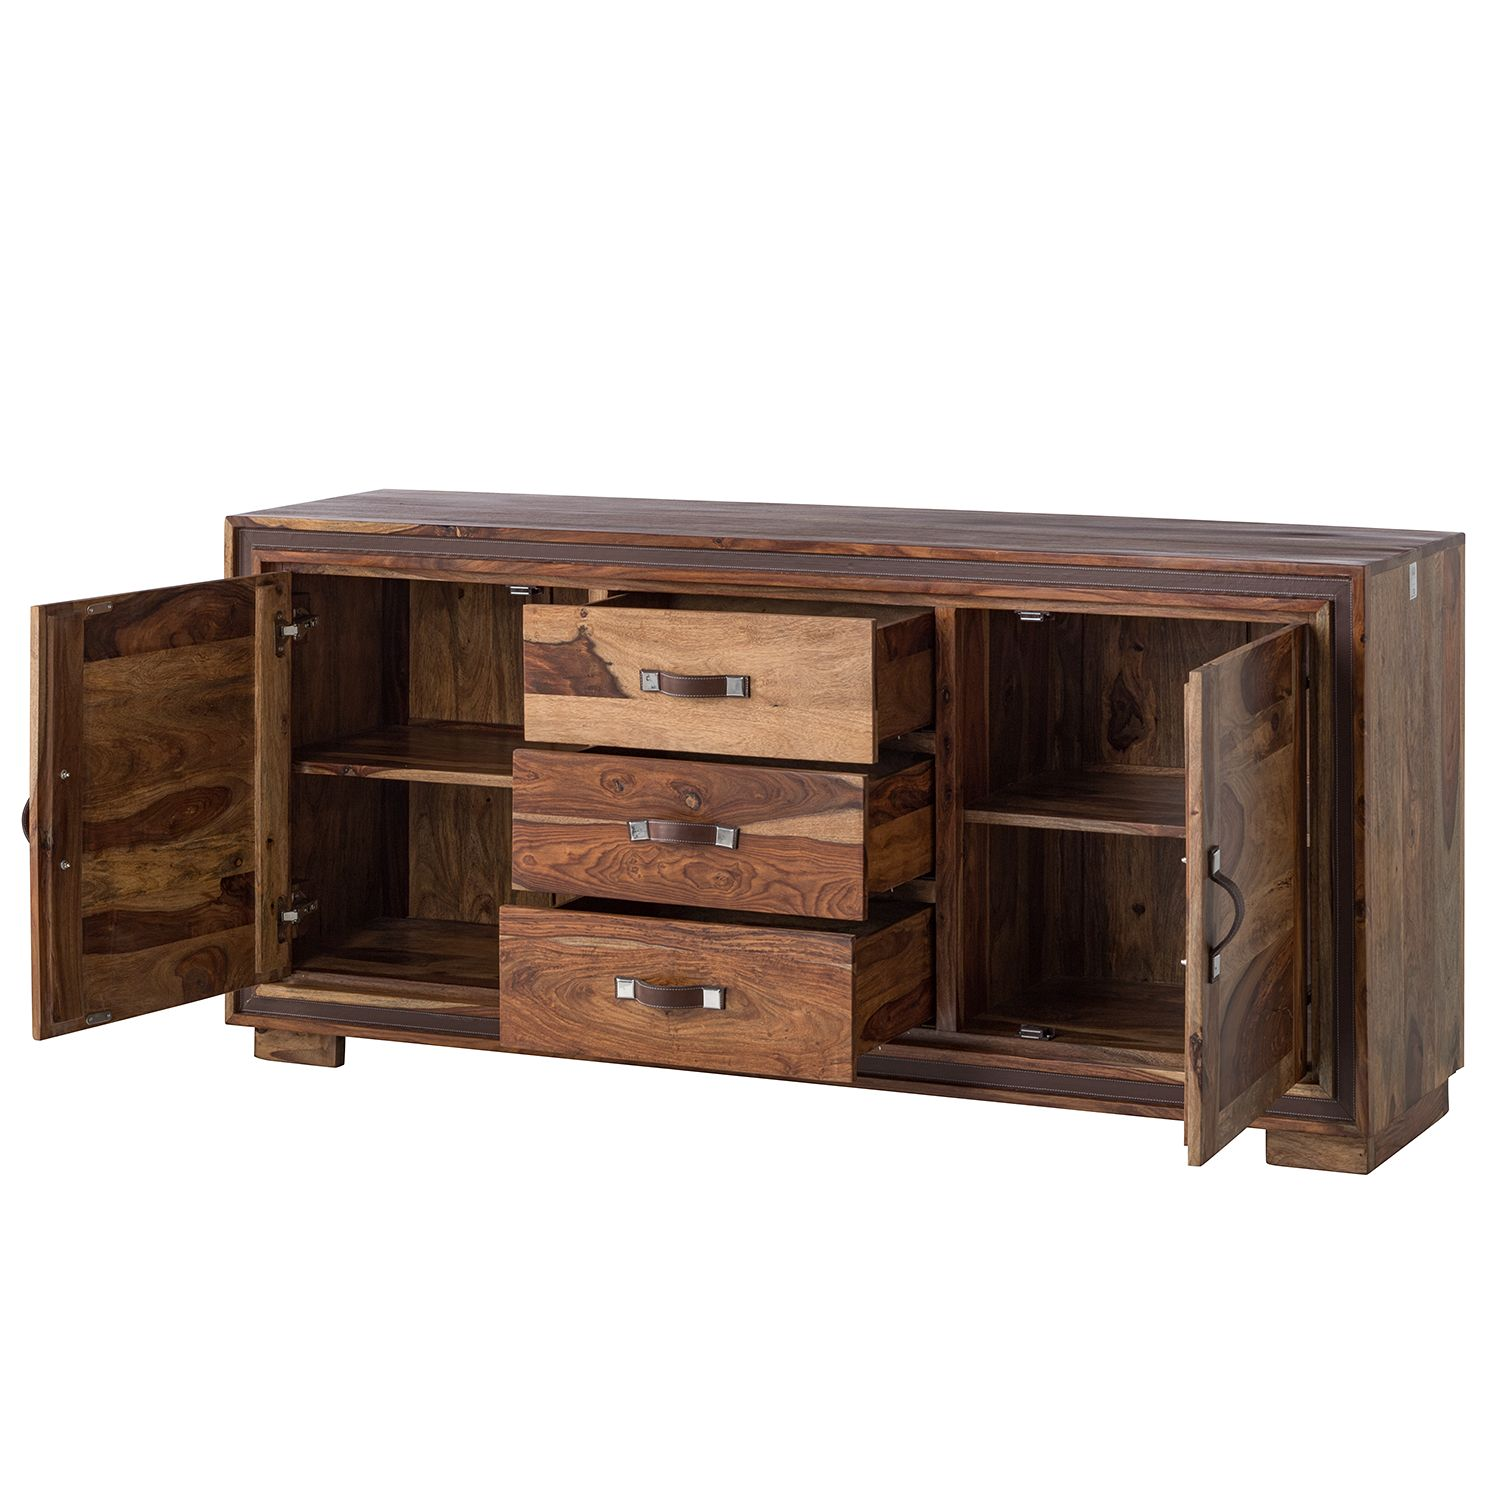 9 sparen sideboard shan ii von wolf m bel nur 679 99 cherry m bel home24. Black Bedroom Furniture Sets. Home Design Ideas